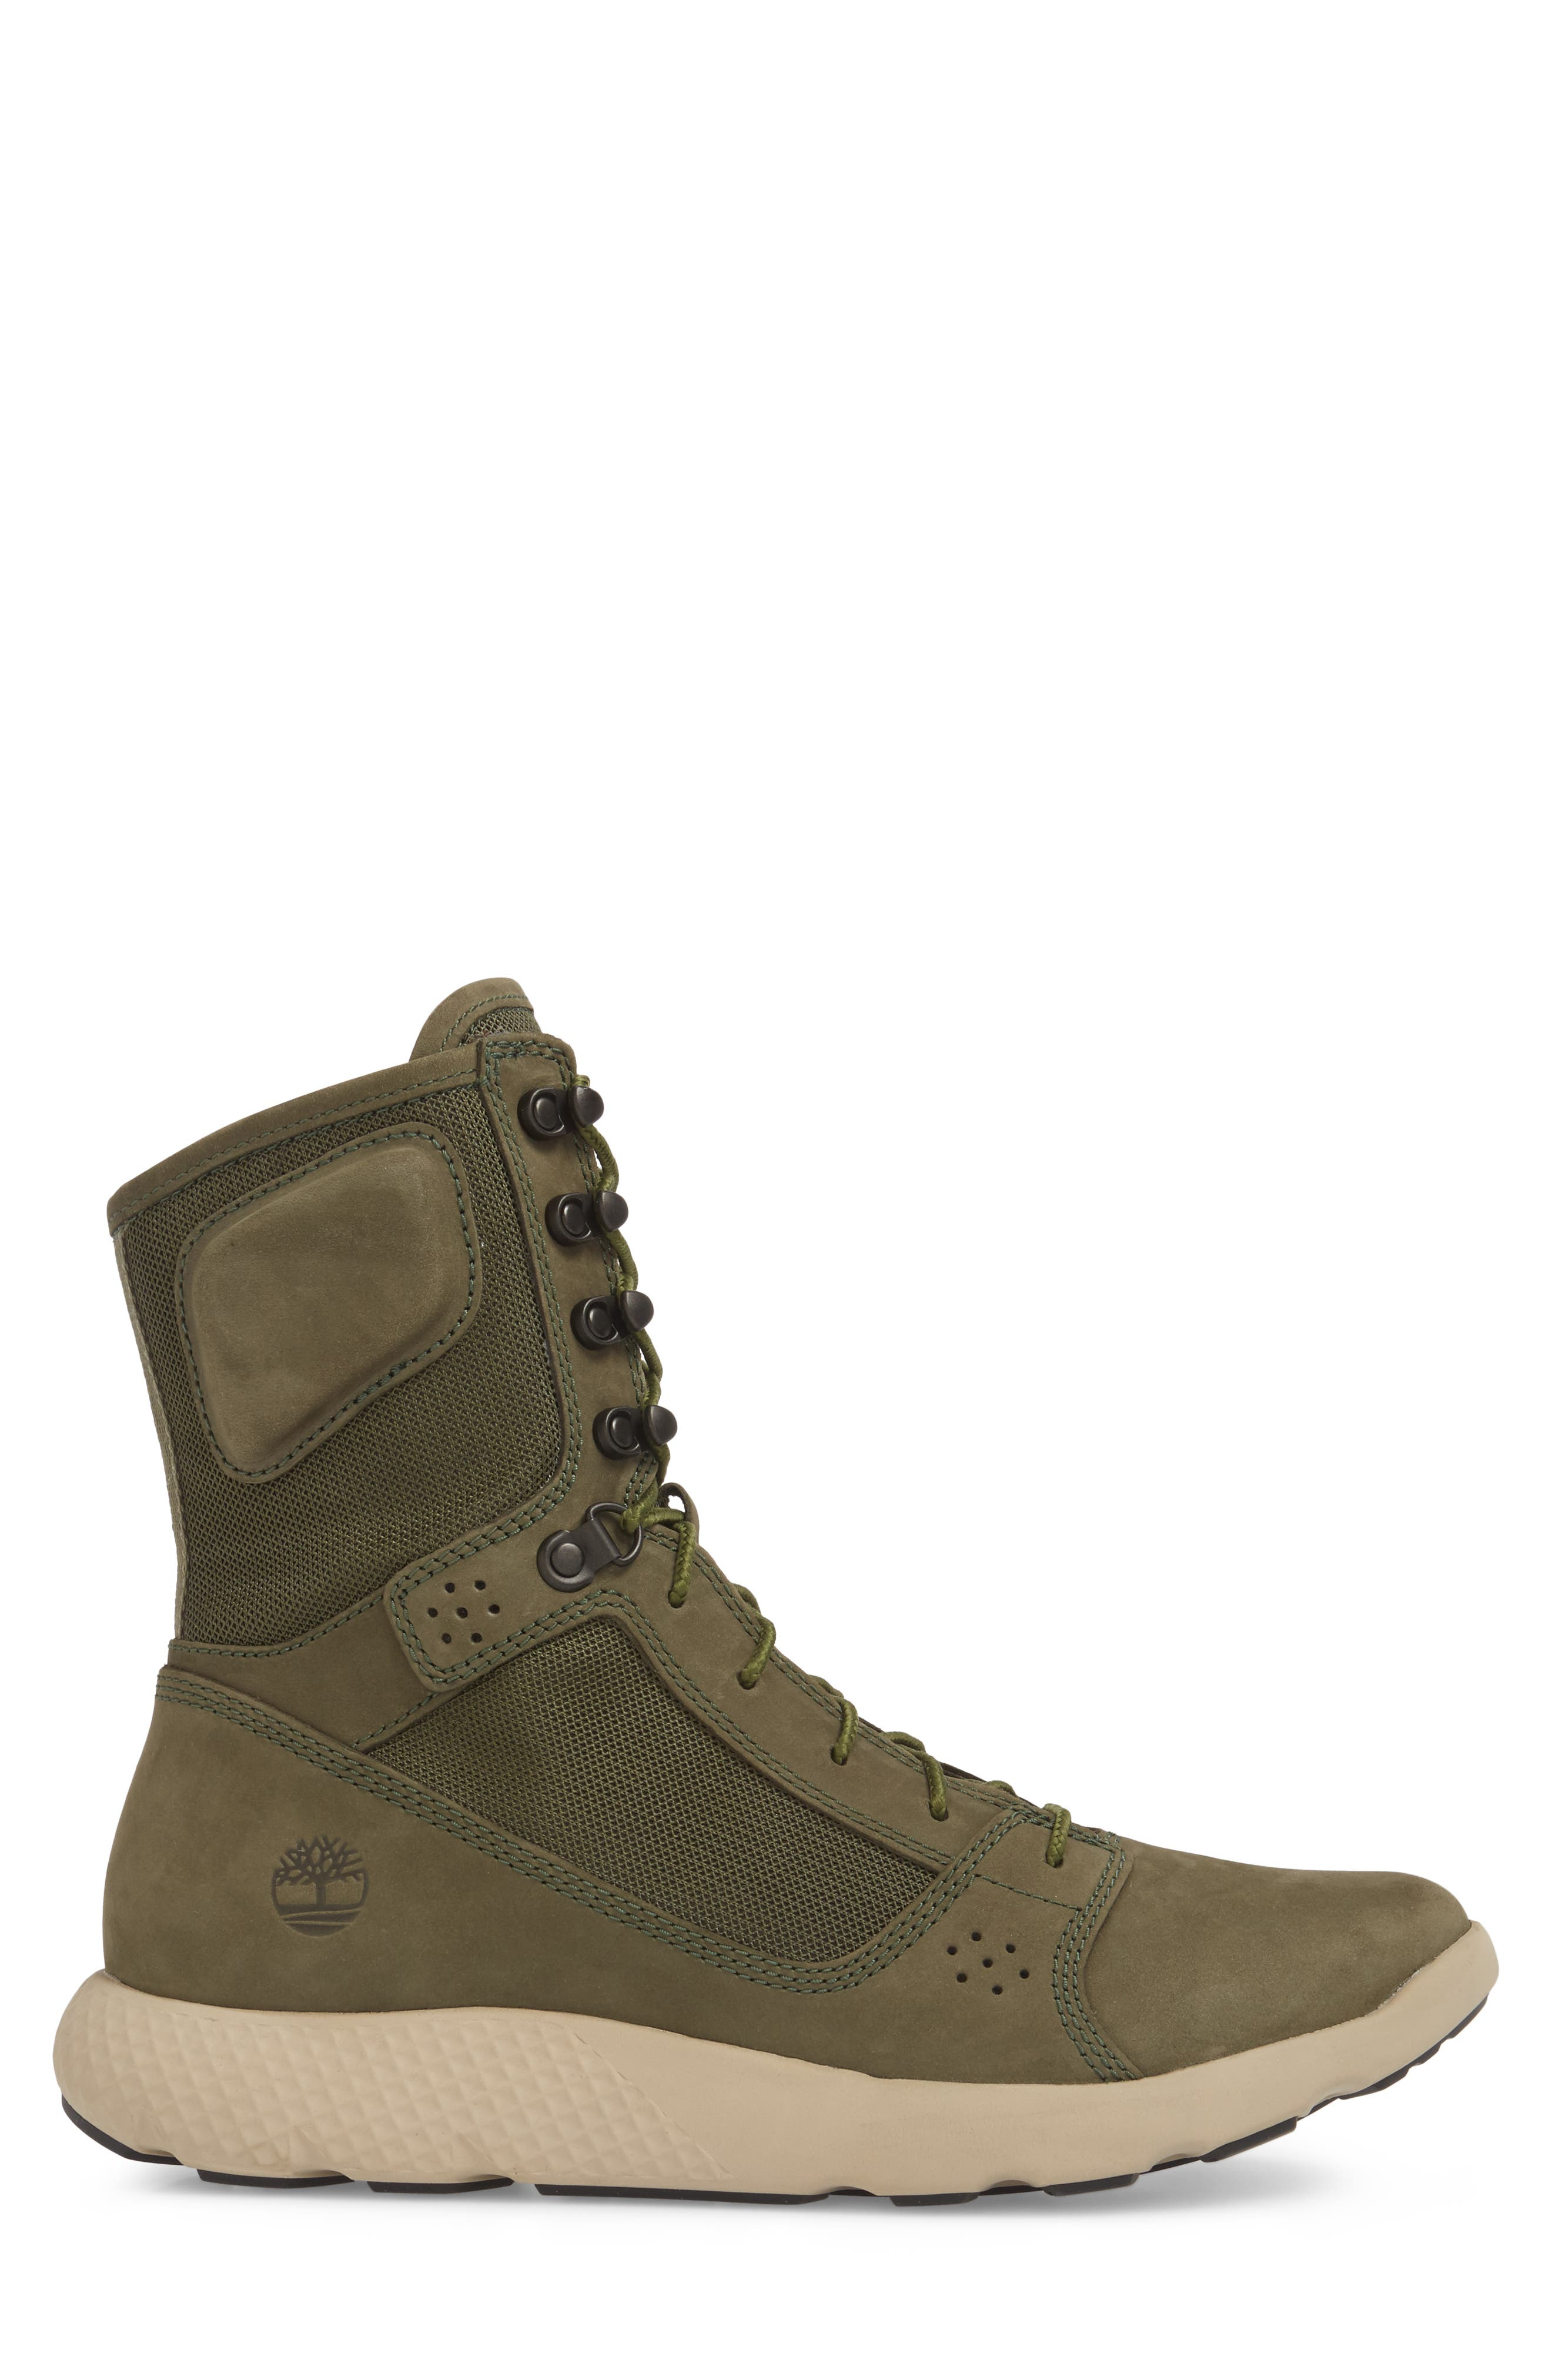 FlyRoam Tactical Boot,                             Alternate thumbnail 3, color,                             Grape Leaf Nubuck Leather